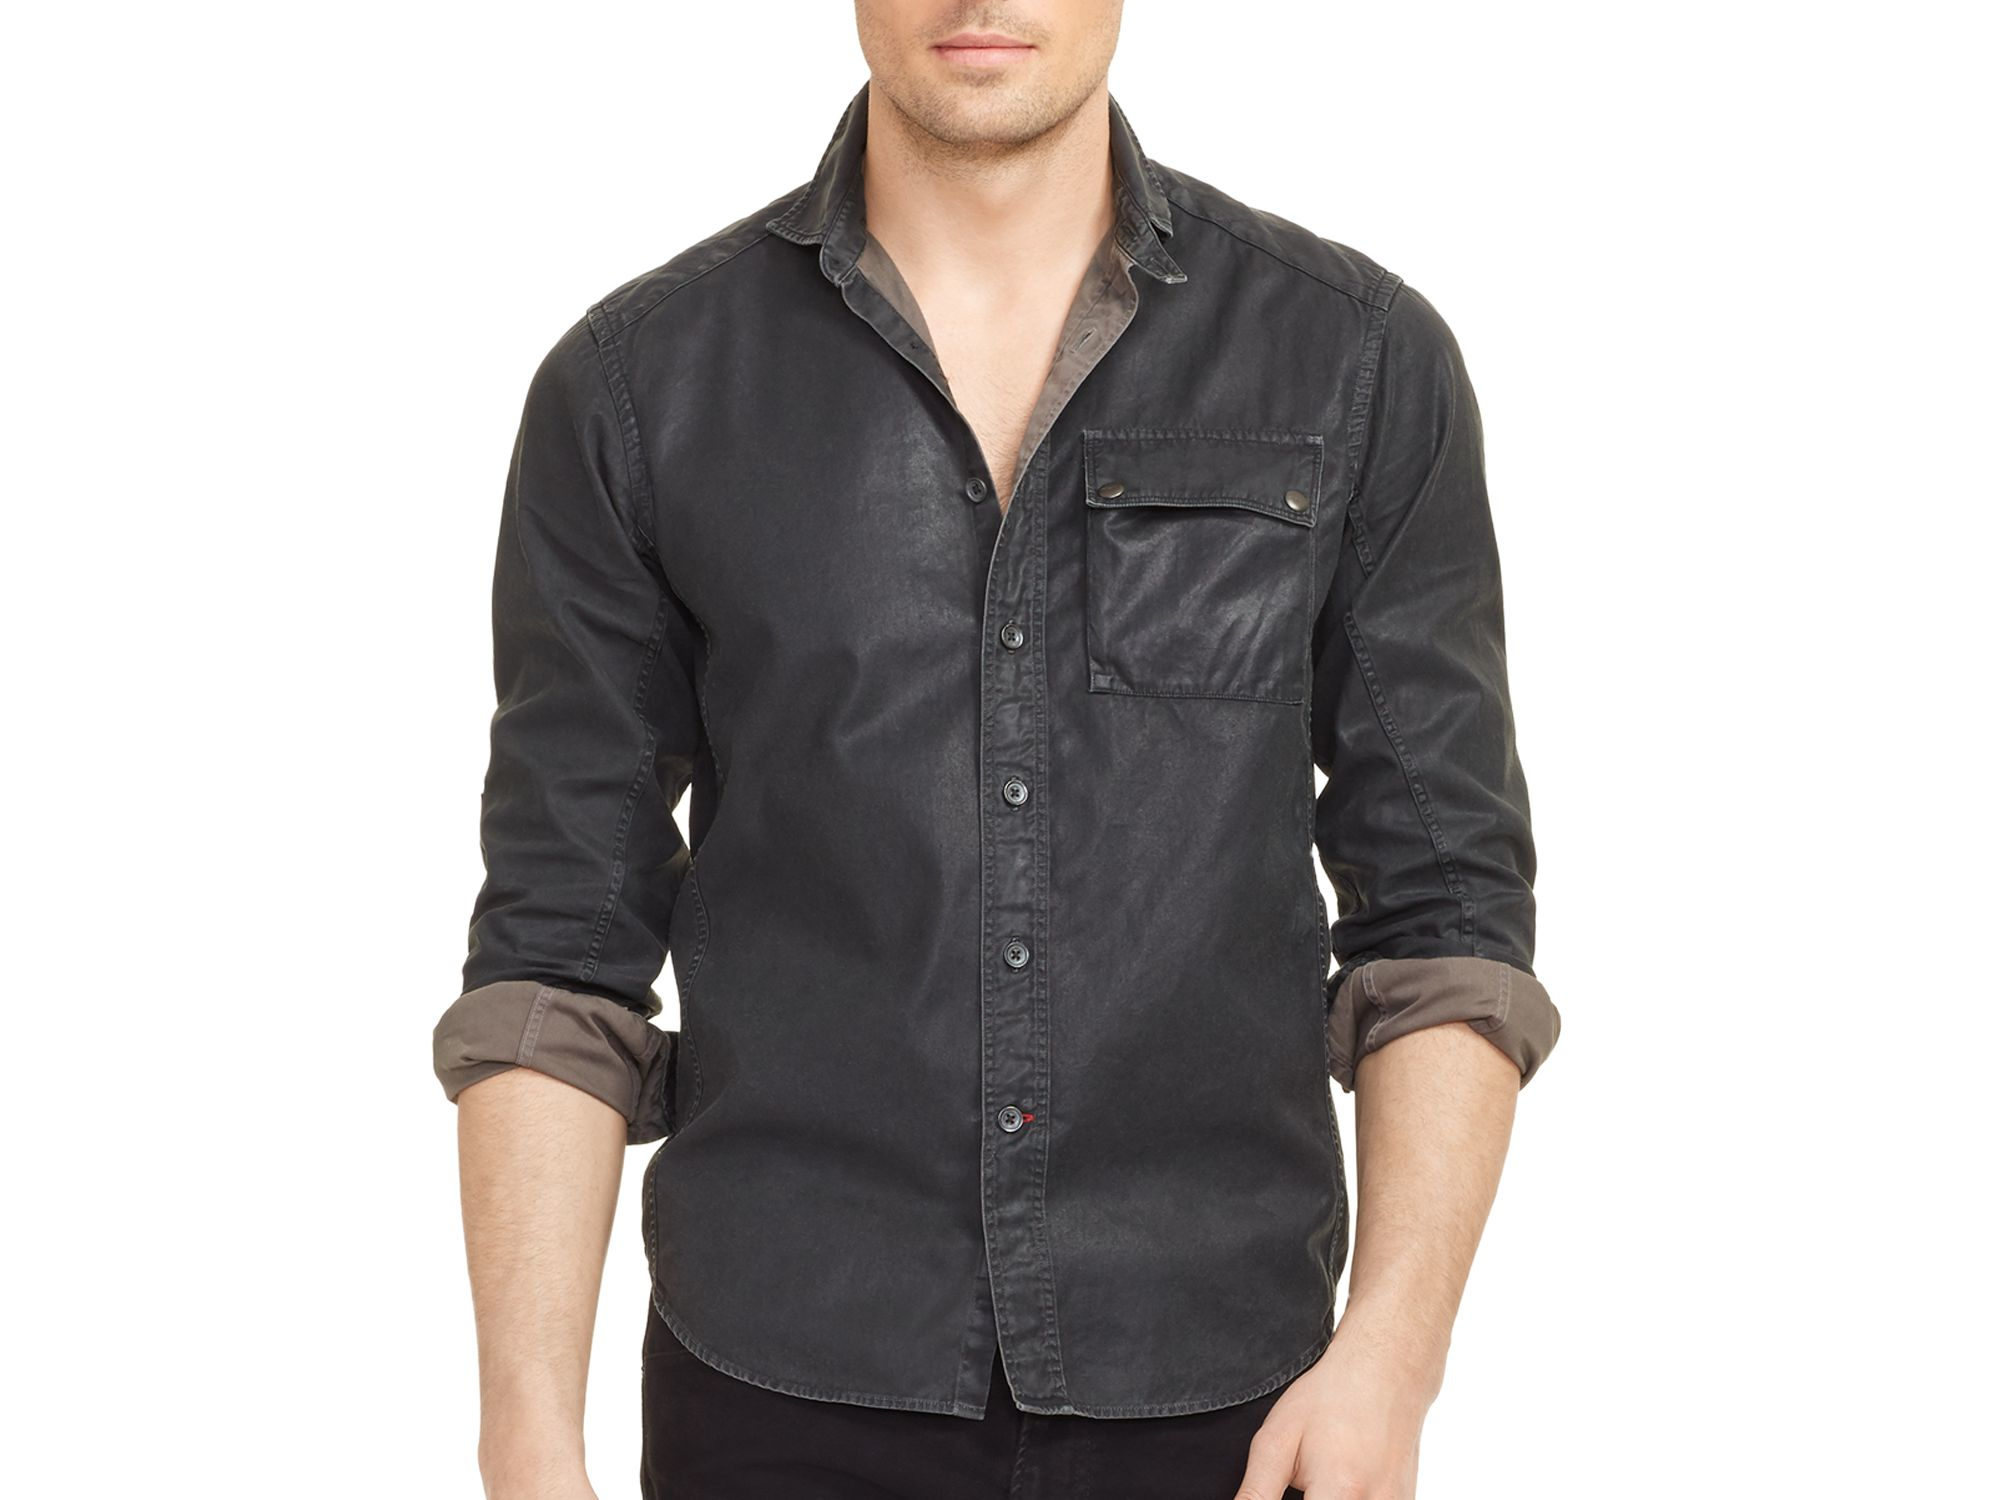 Lyst - Ralph lauren Black Label Quilted Twill Slim Fit Button Down ...